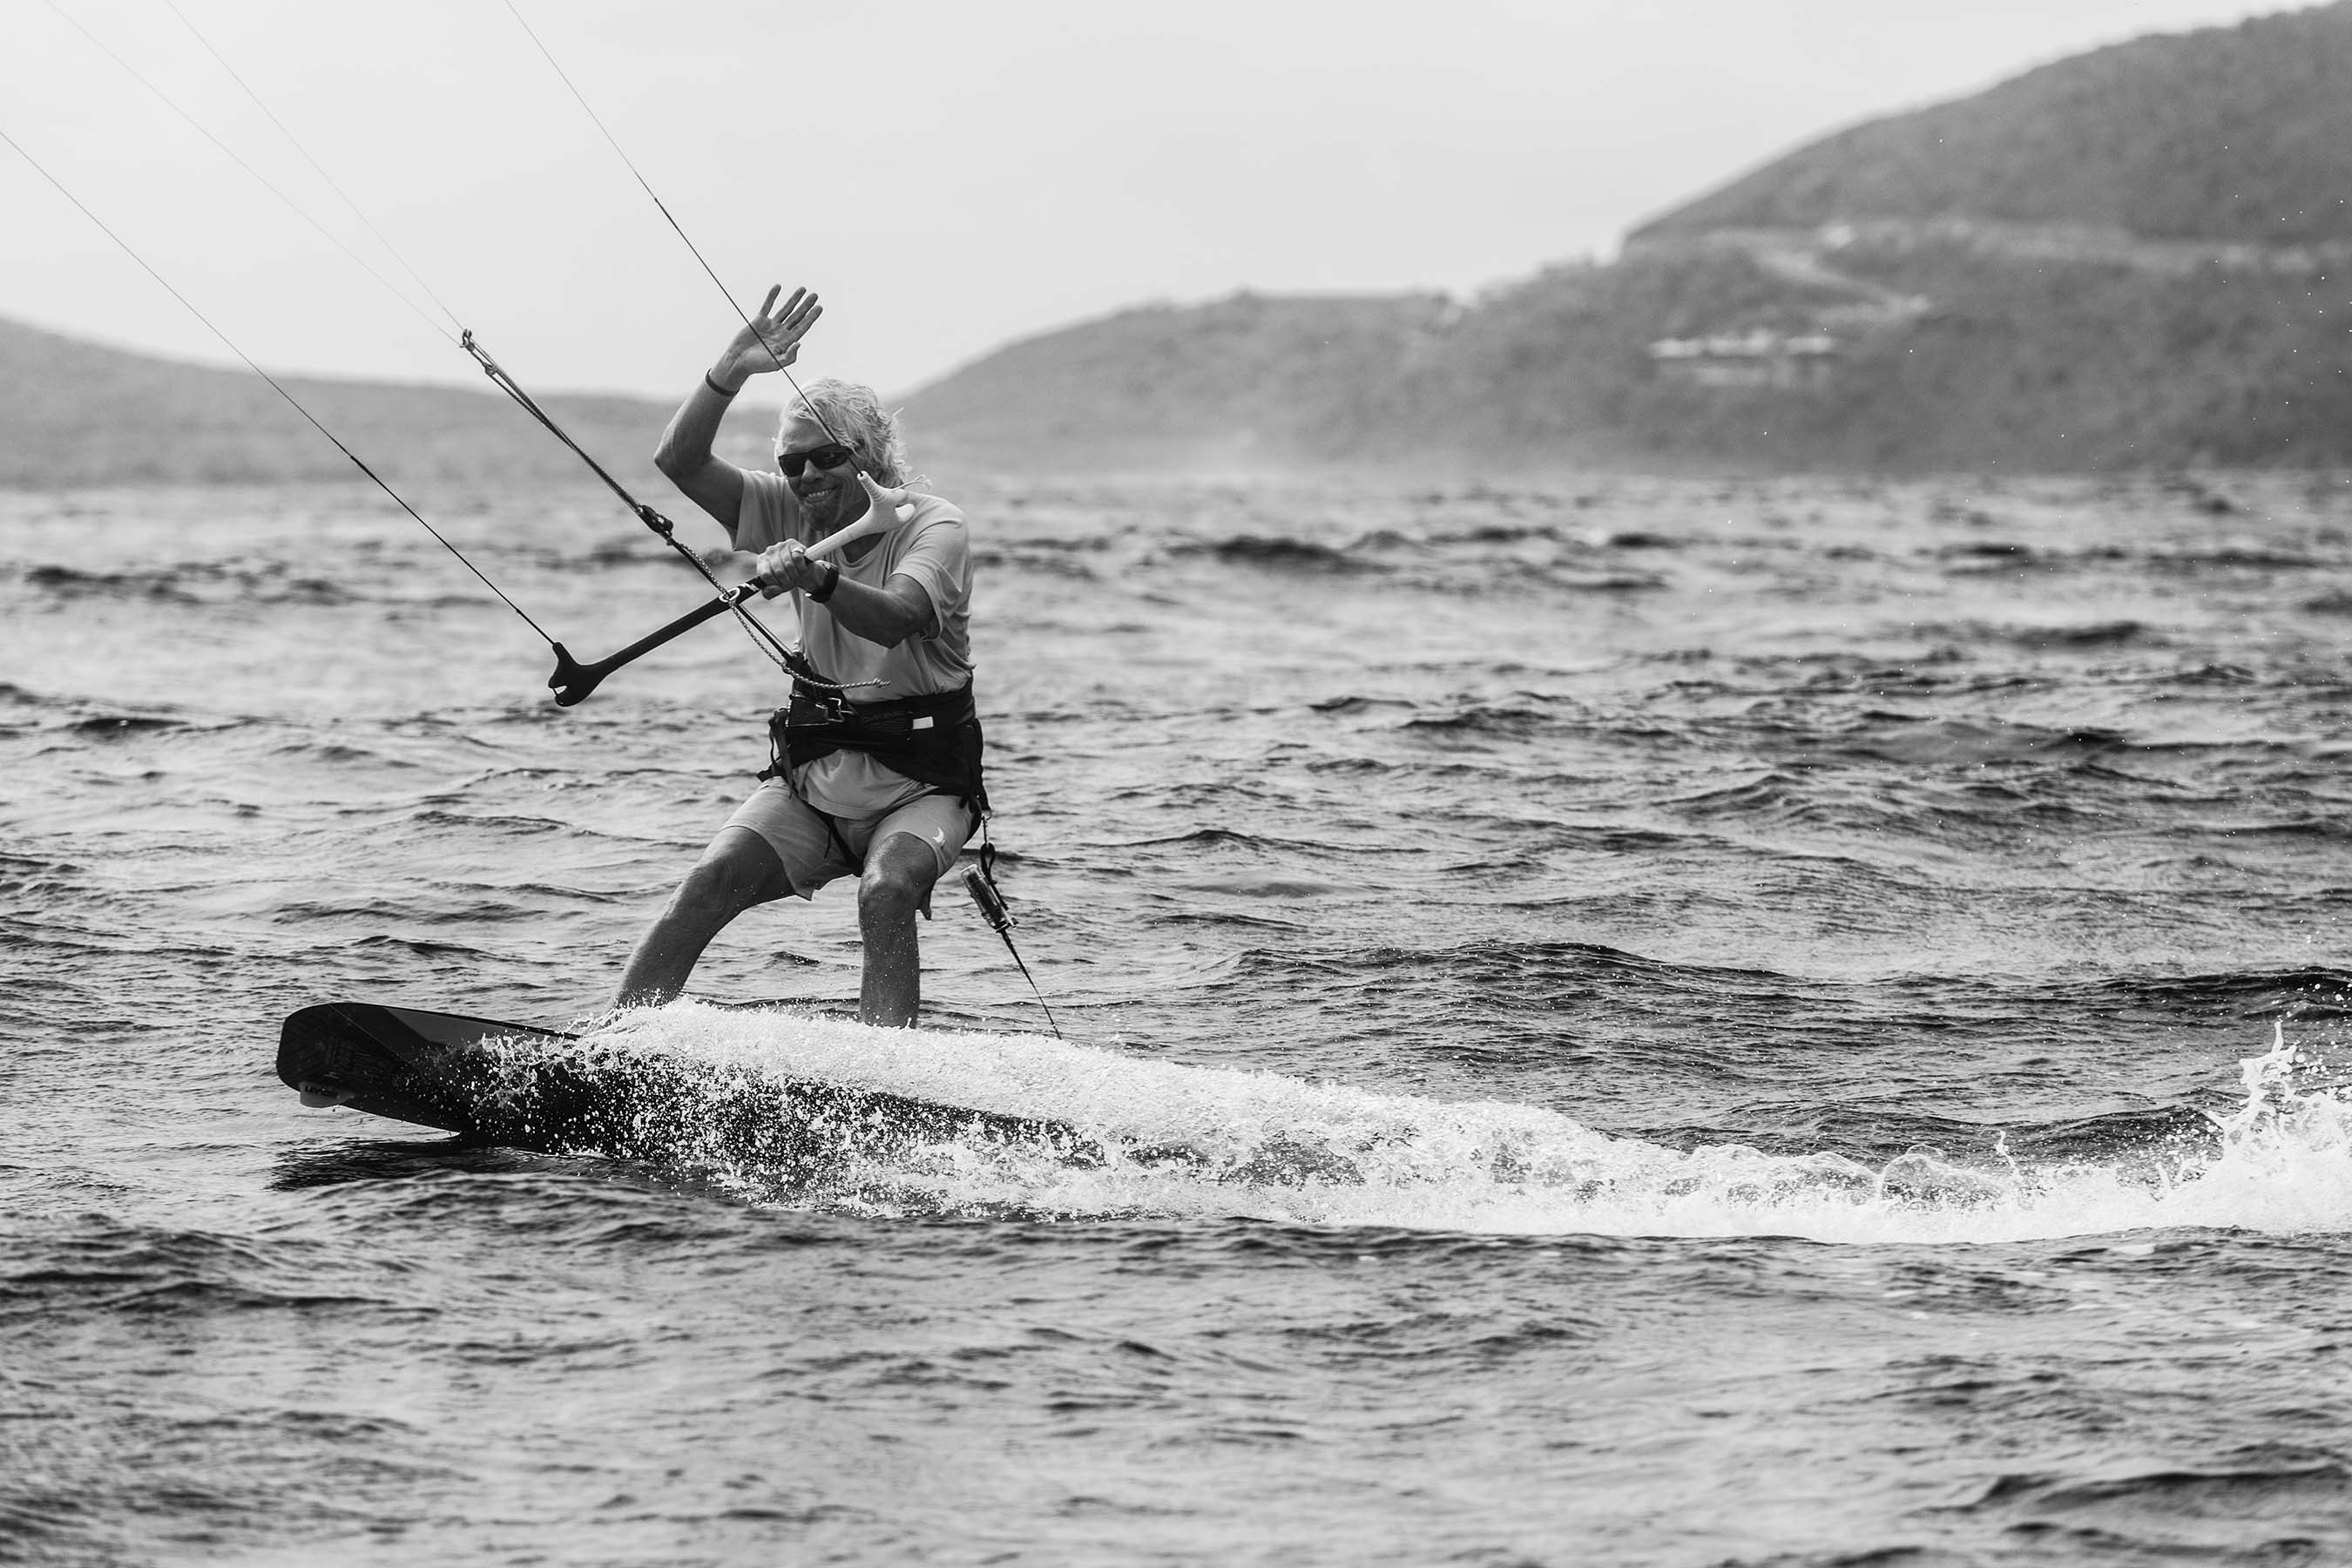 There isn't a single kiteboarder who's made as great an impact on the world as Richard Branson. He's gained worldwide acclaim for his success in business and loves to shred at his private island.